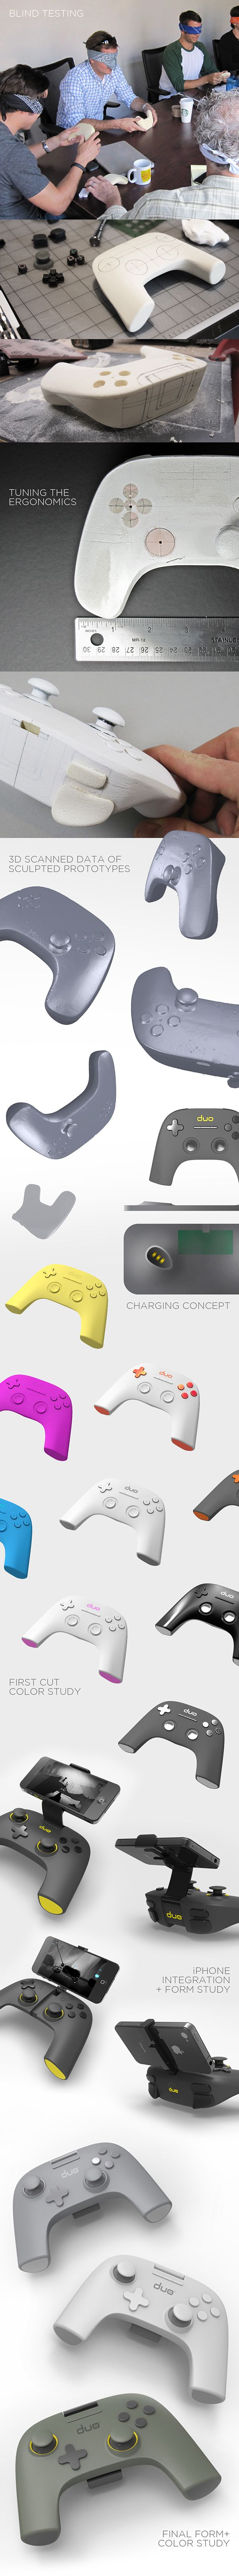 Duo Gaming teamed with Pensar to develop a family of iOS gaming devices. The Gamer Pro, an ergonomic game controller for the iPhone and iPad, is the cornerstone of the product family. Goals: + provide excellent ergonomics + build an identity unique to…